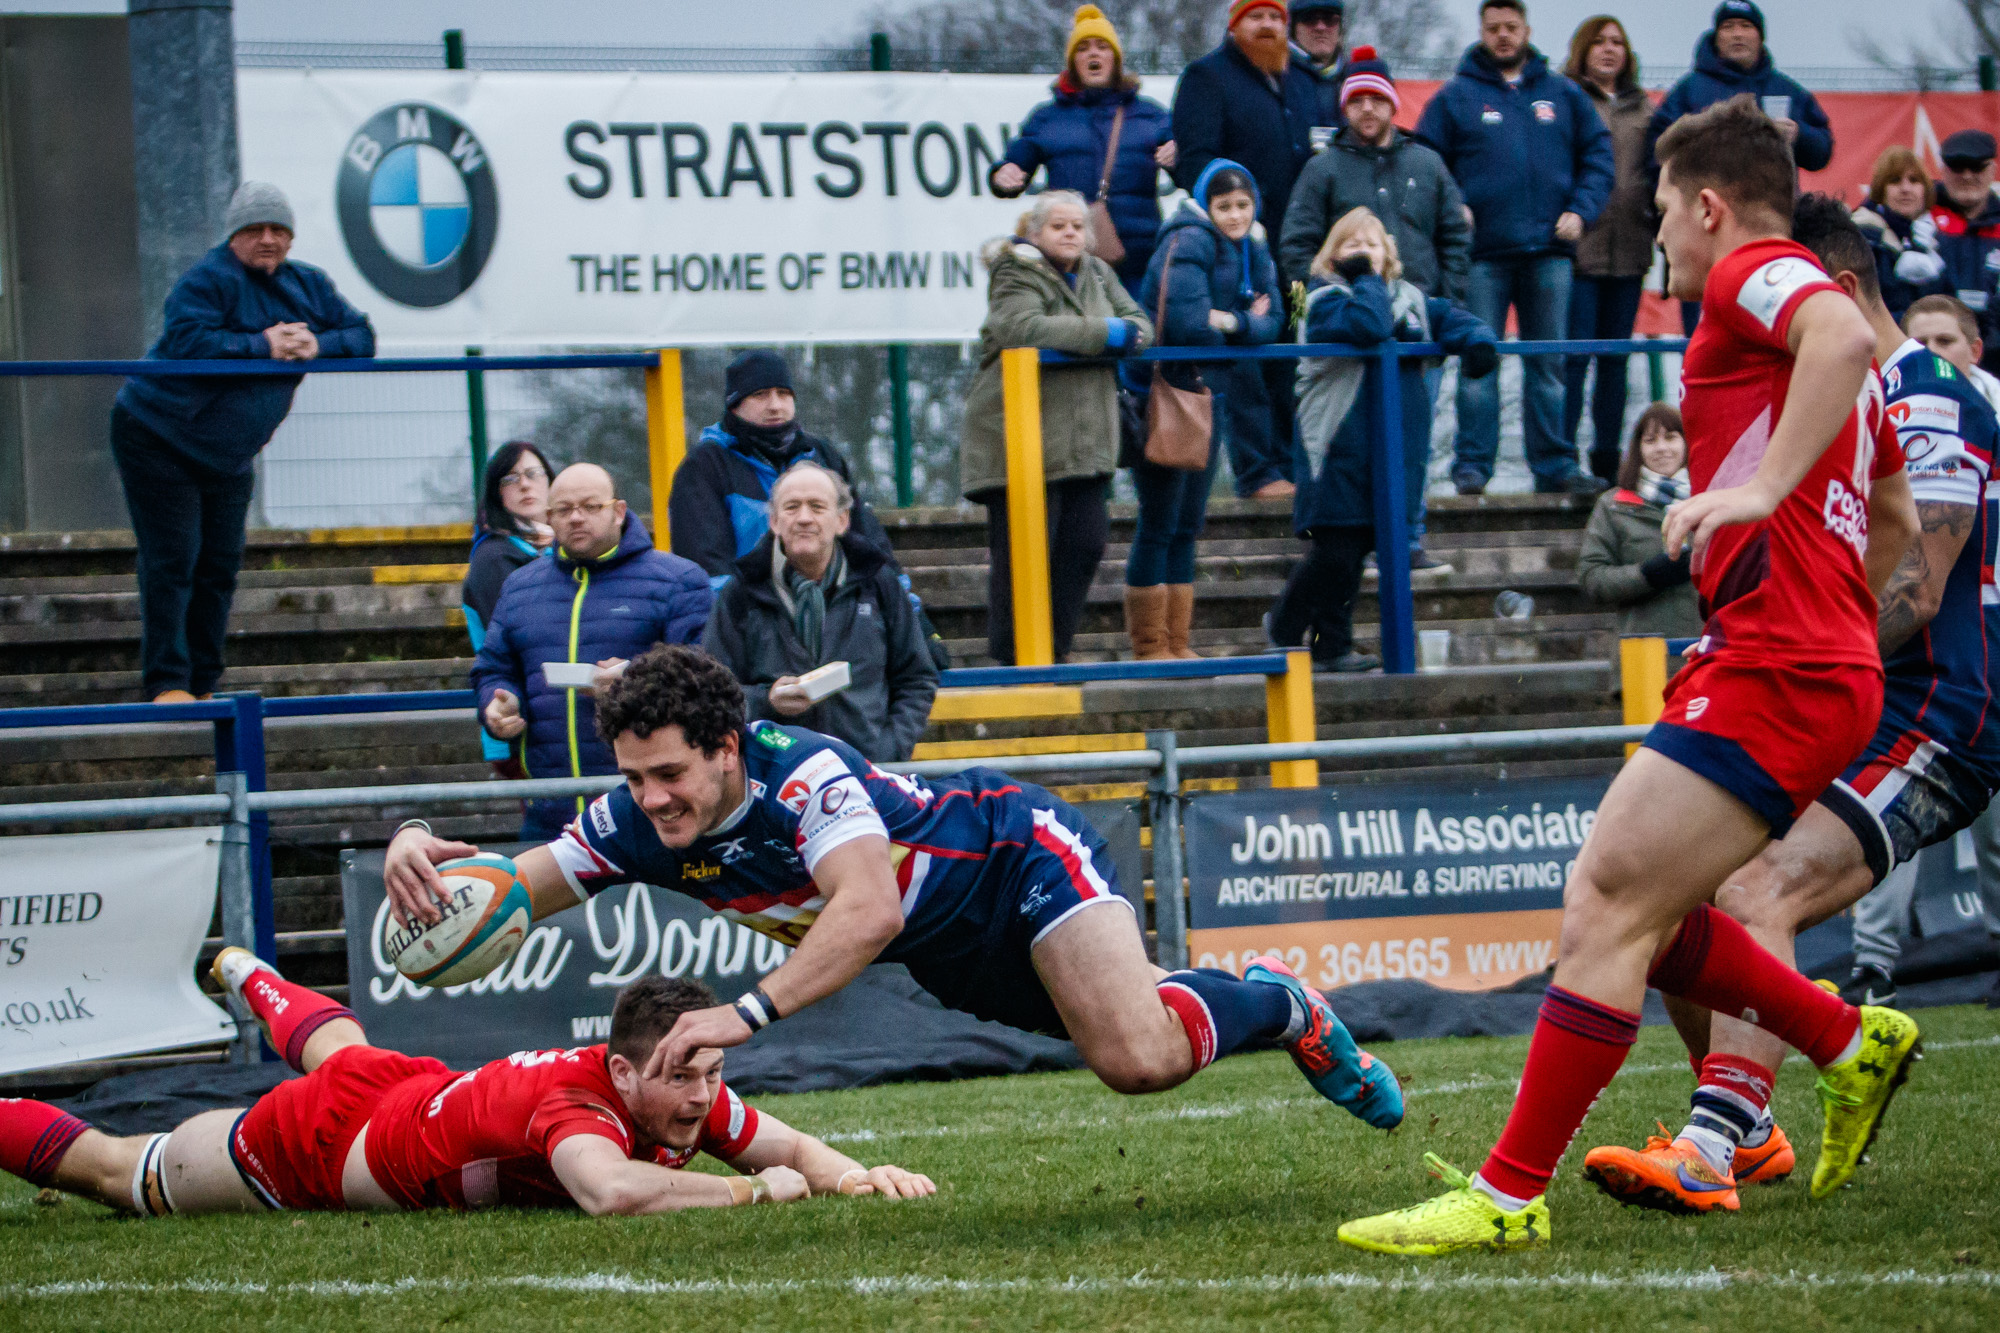 A run,graceful dive and a smile gets Paul Jarvis over the line